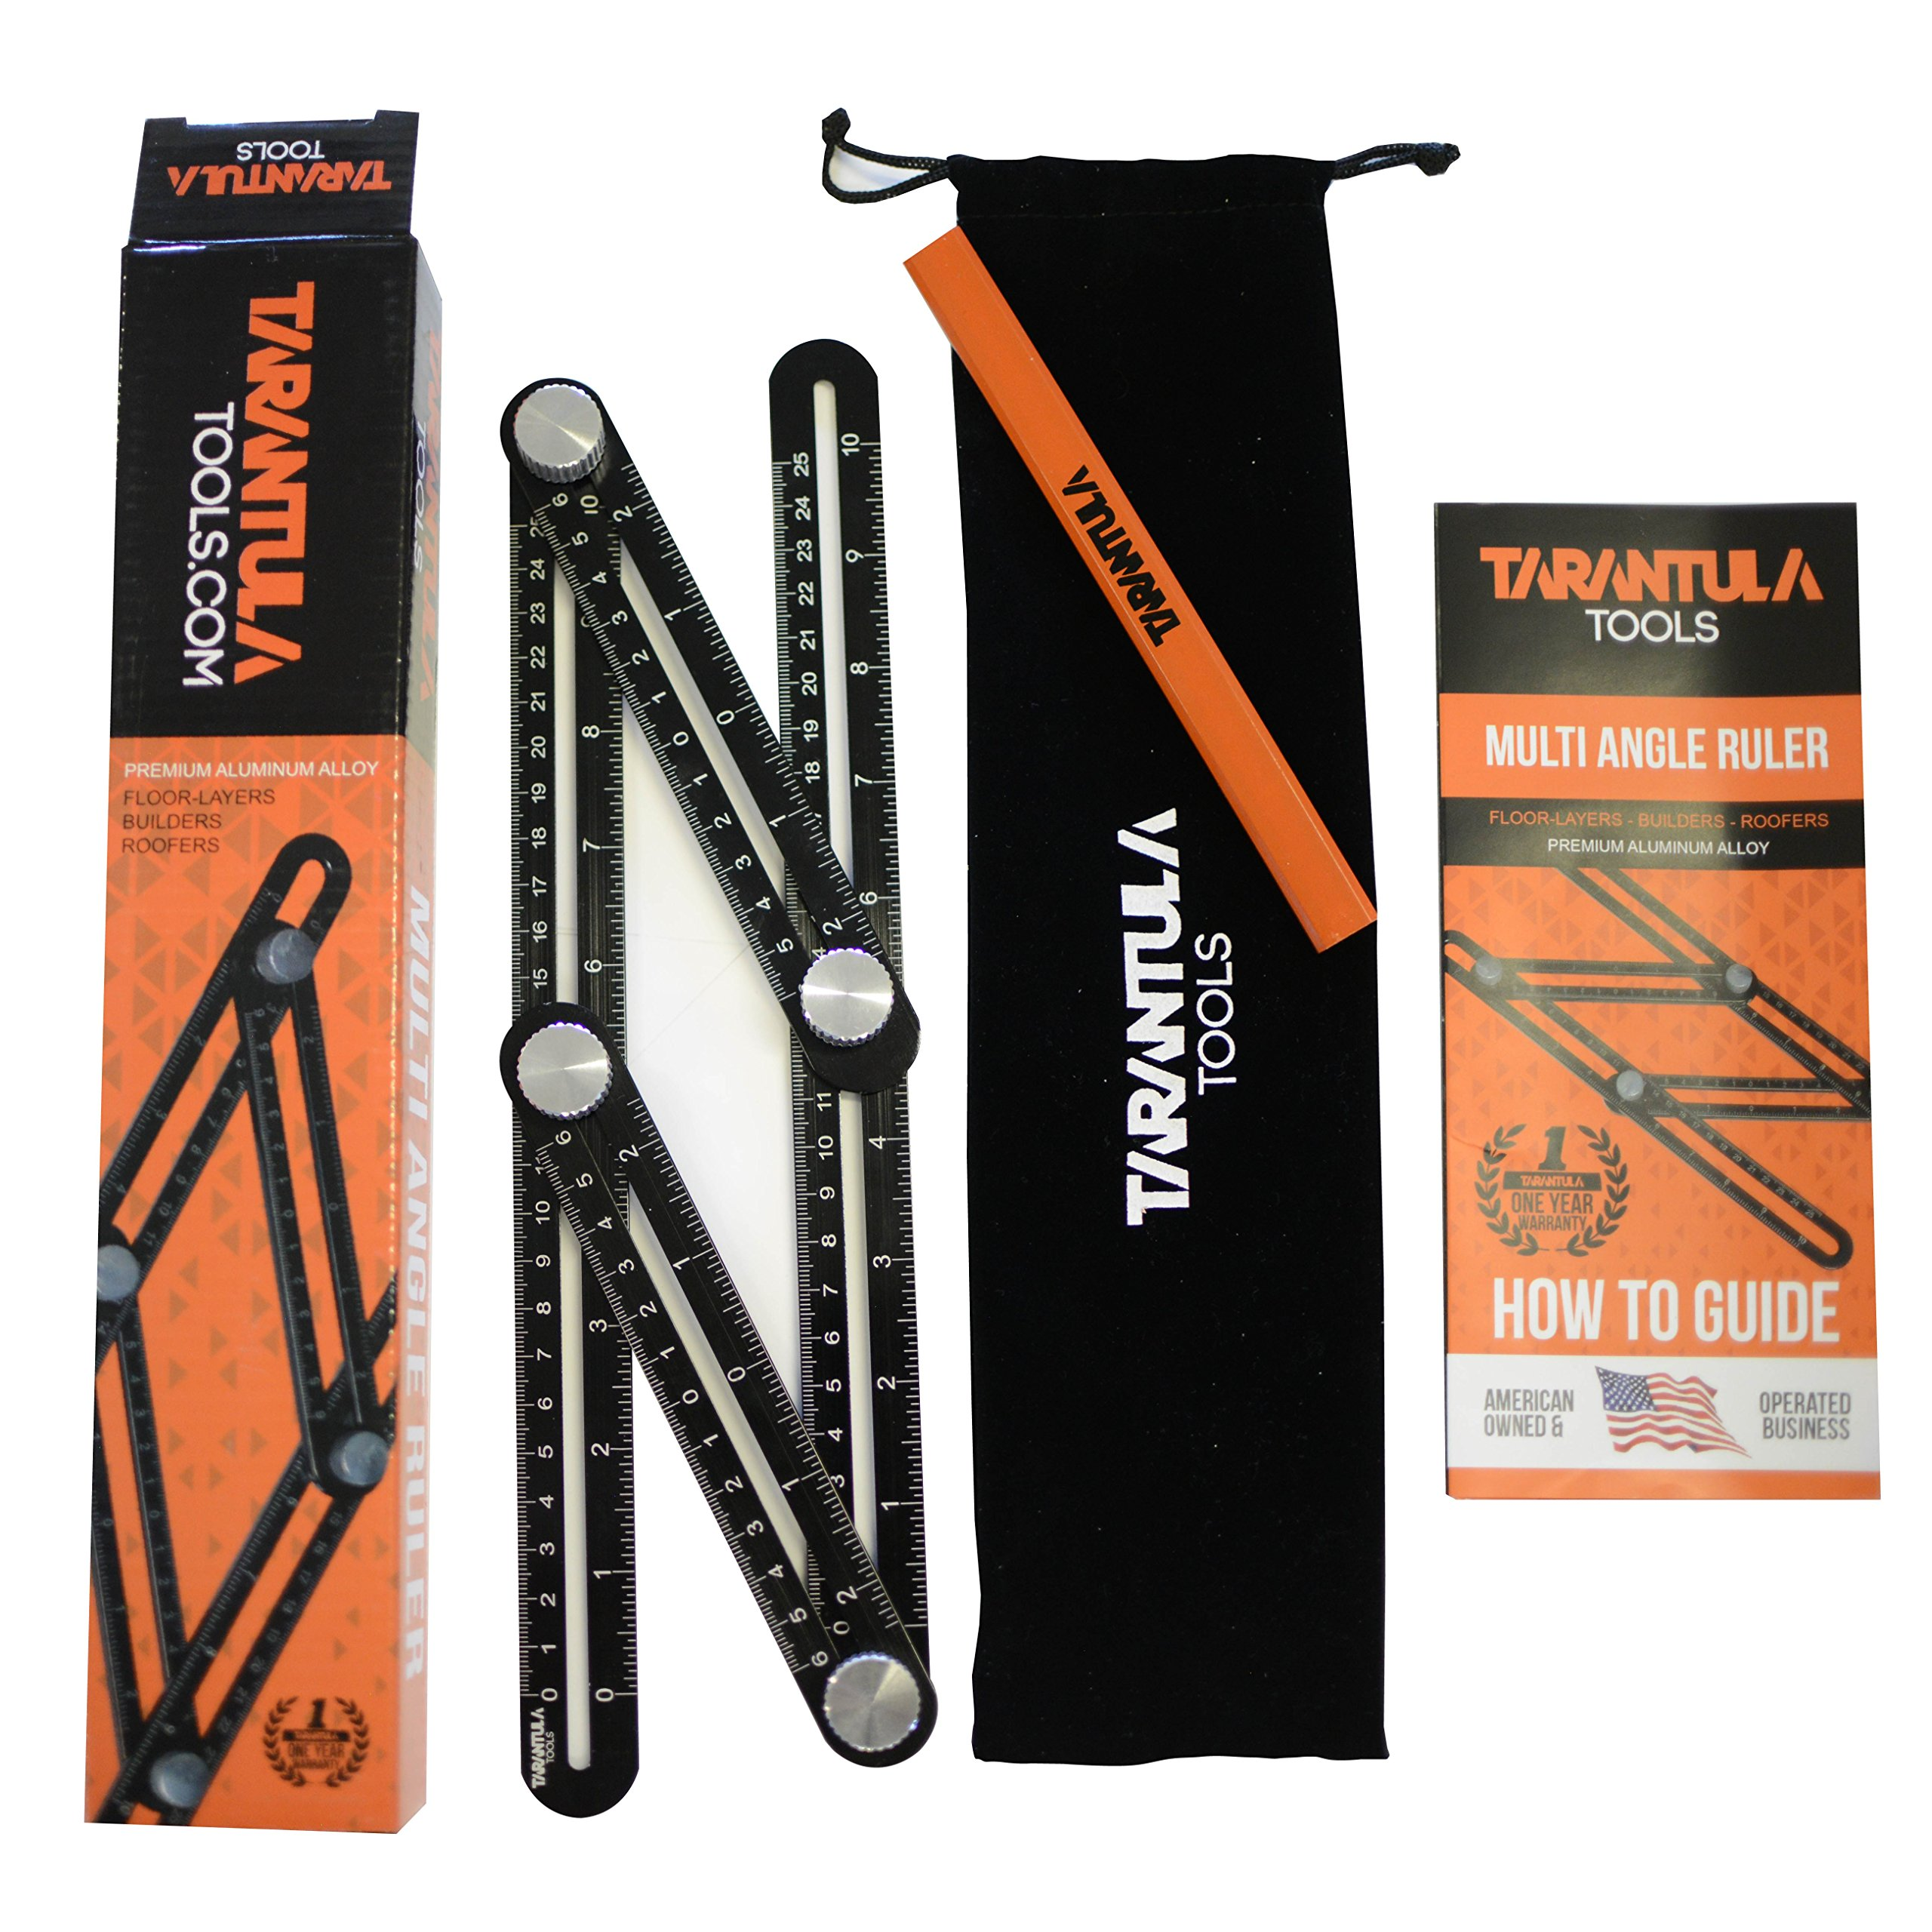 Tarantula Tools Angleizer Ruler 2 PACK - Angle-izer Template Tool - Black Aluminum Adjustable Angleizer - Angle Tool - All Metal No Plastic - Easily Set The Right Measurement, Angles